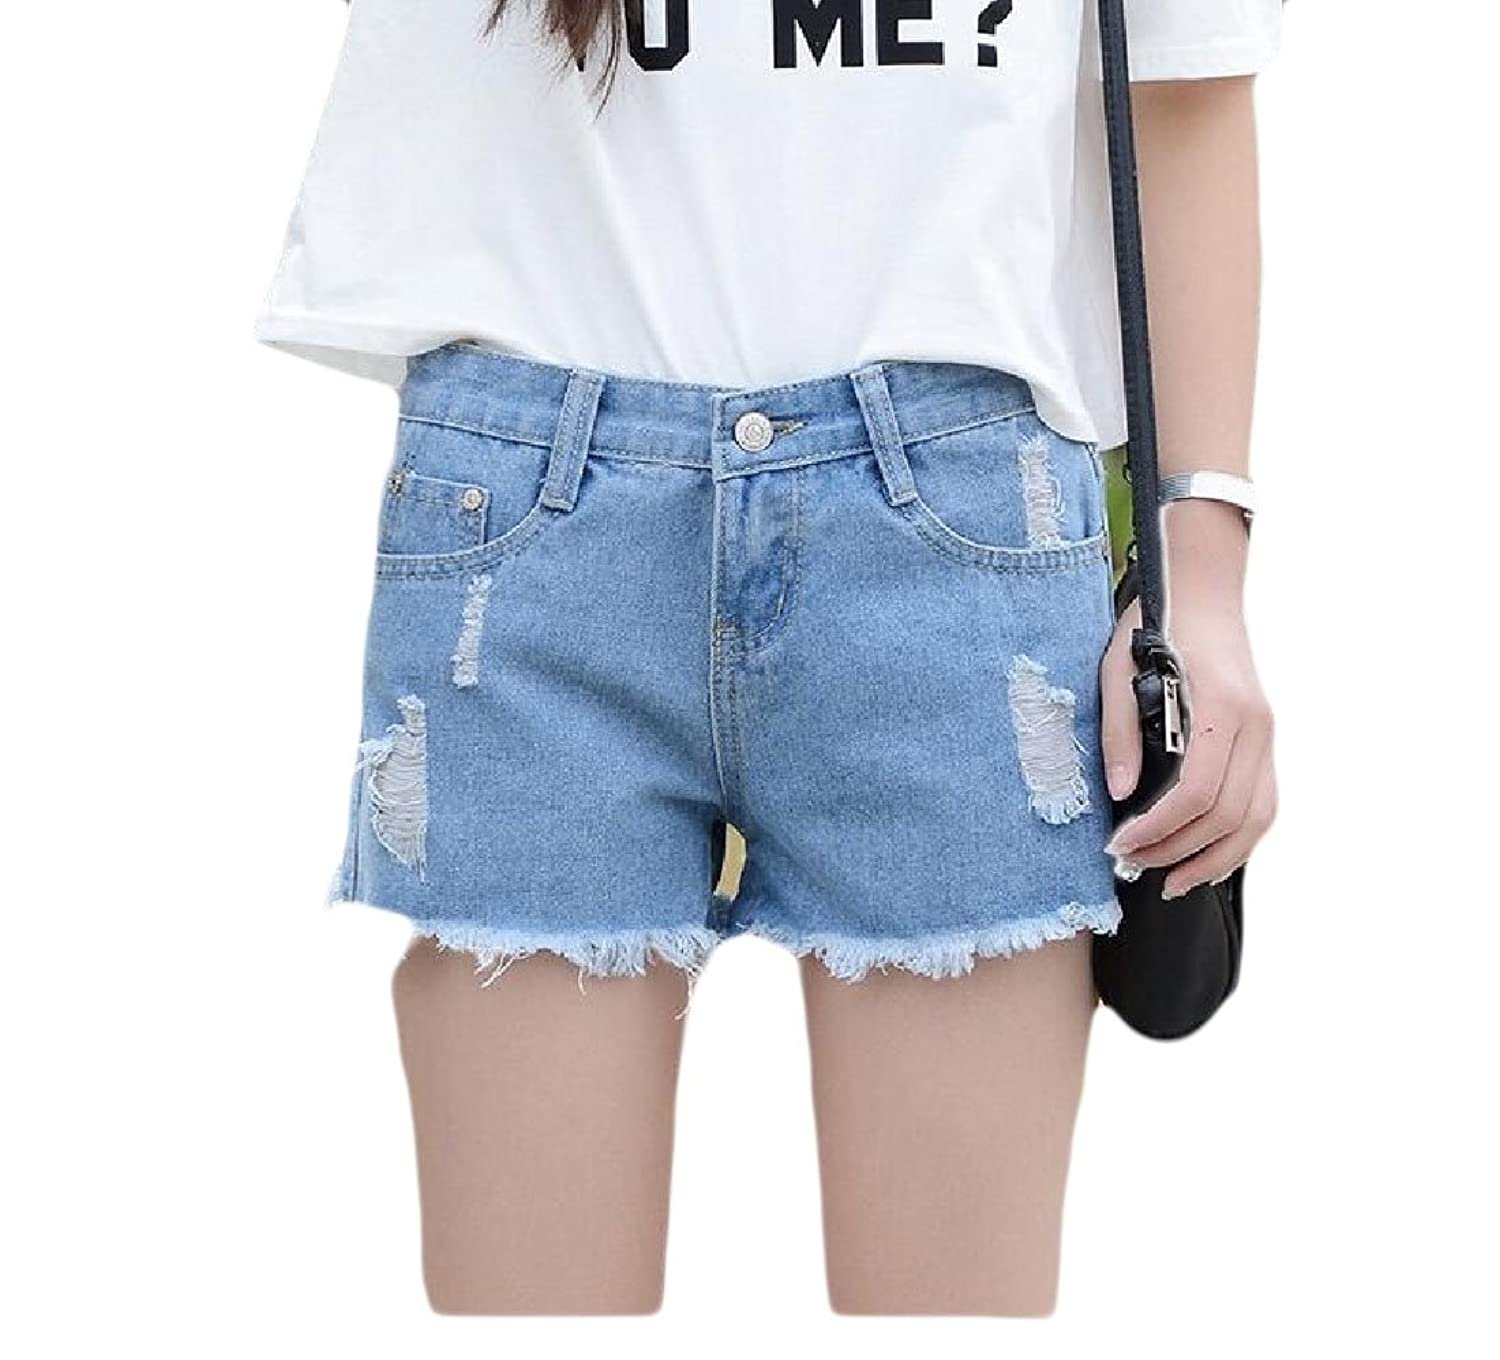 Abetteric Women Assymetry Highwaist Loose Fit Holes Slim Fit Hot Shorts Jeans Light Blue XS